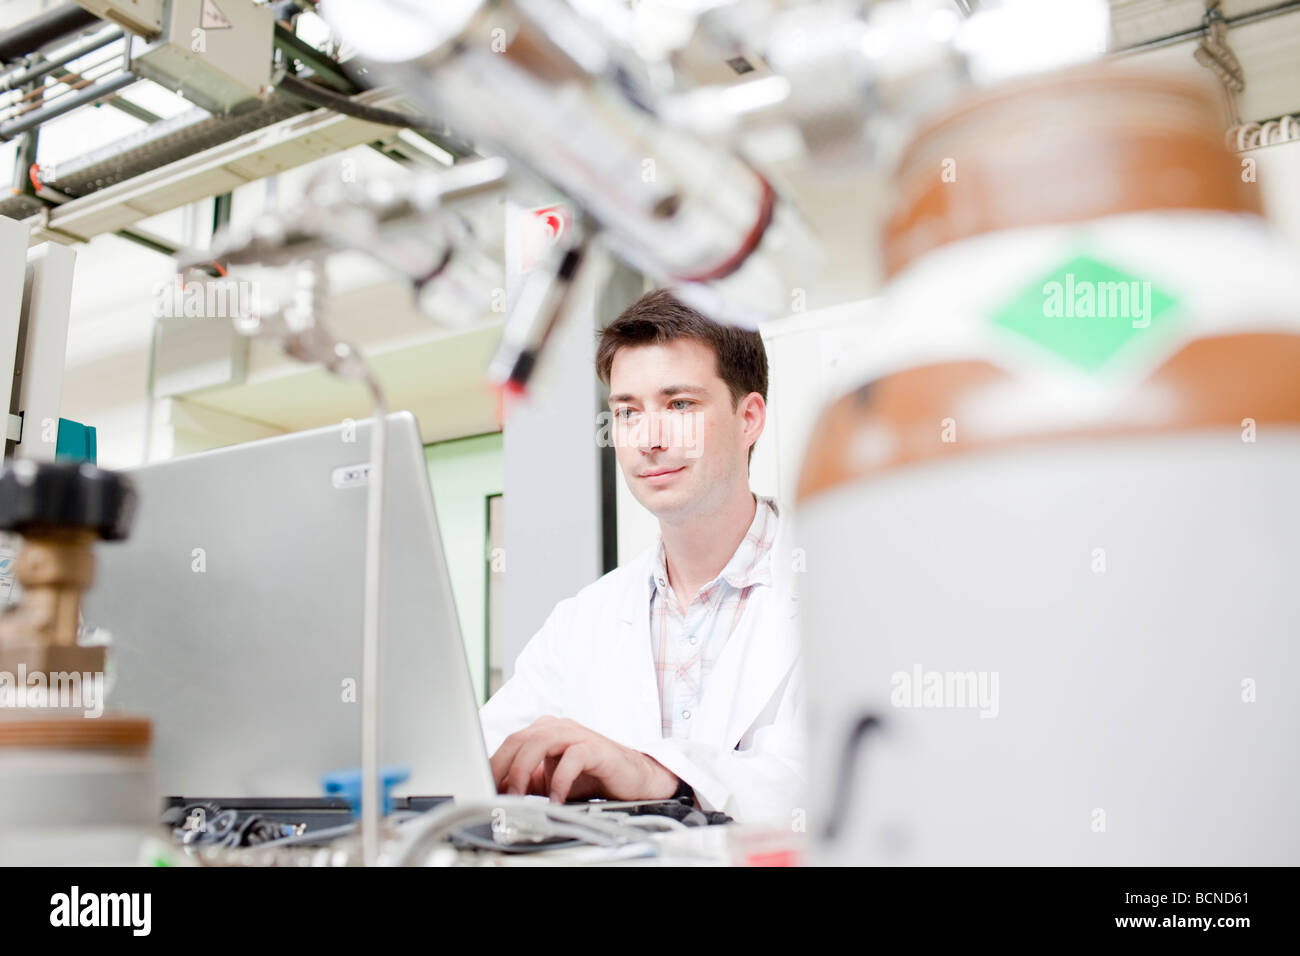 Scientist in a laboratoy in Juelich - Stock Image